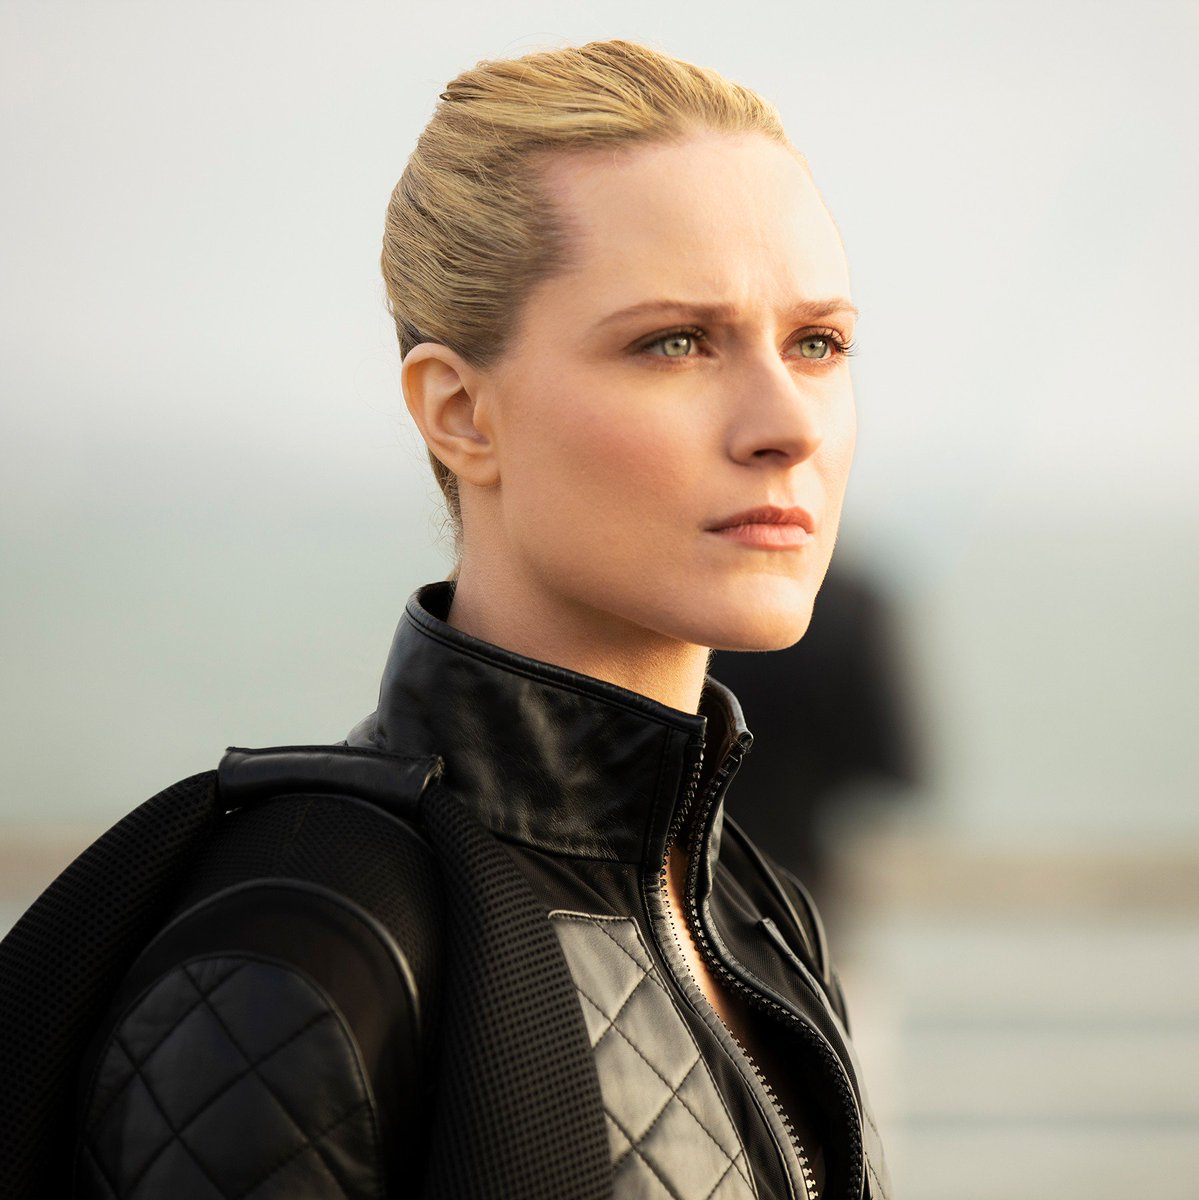 RT @WestworldGifs: New photo of Dolores in #Westworld season 3. https://t.co/9hqWTkdhCt